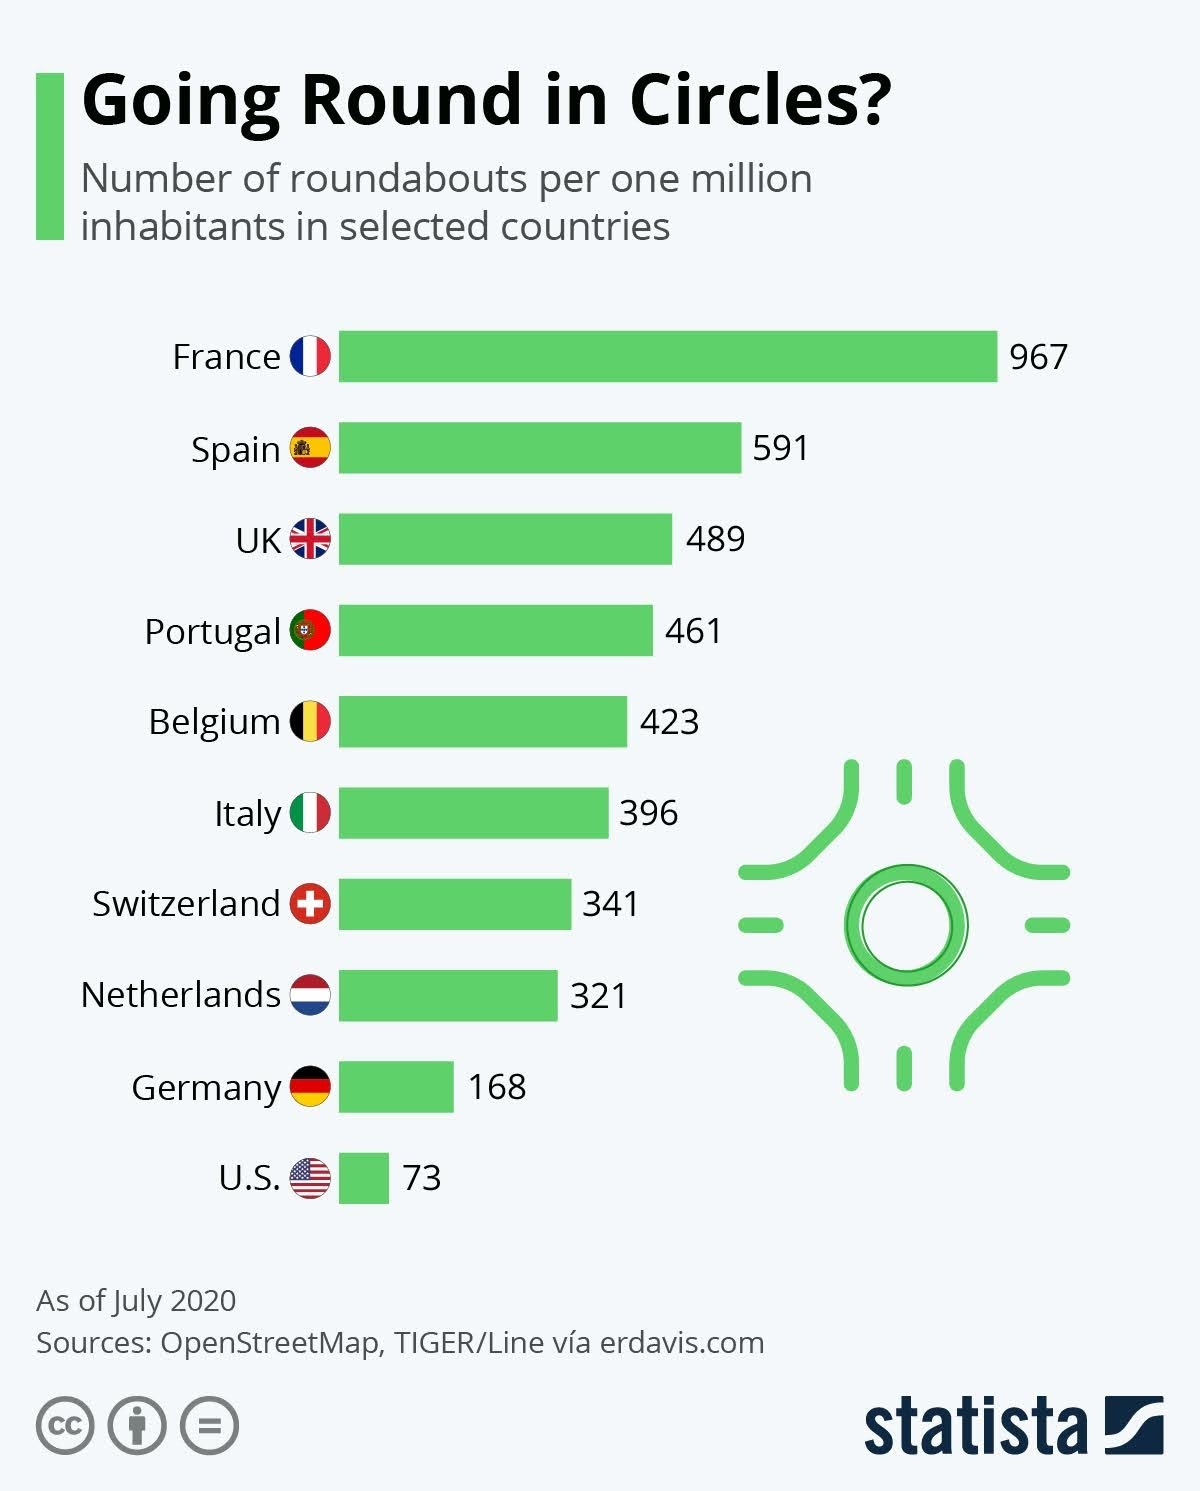 Going Round in Circles? The Countries That Prefer Roundabouts #infographic